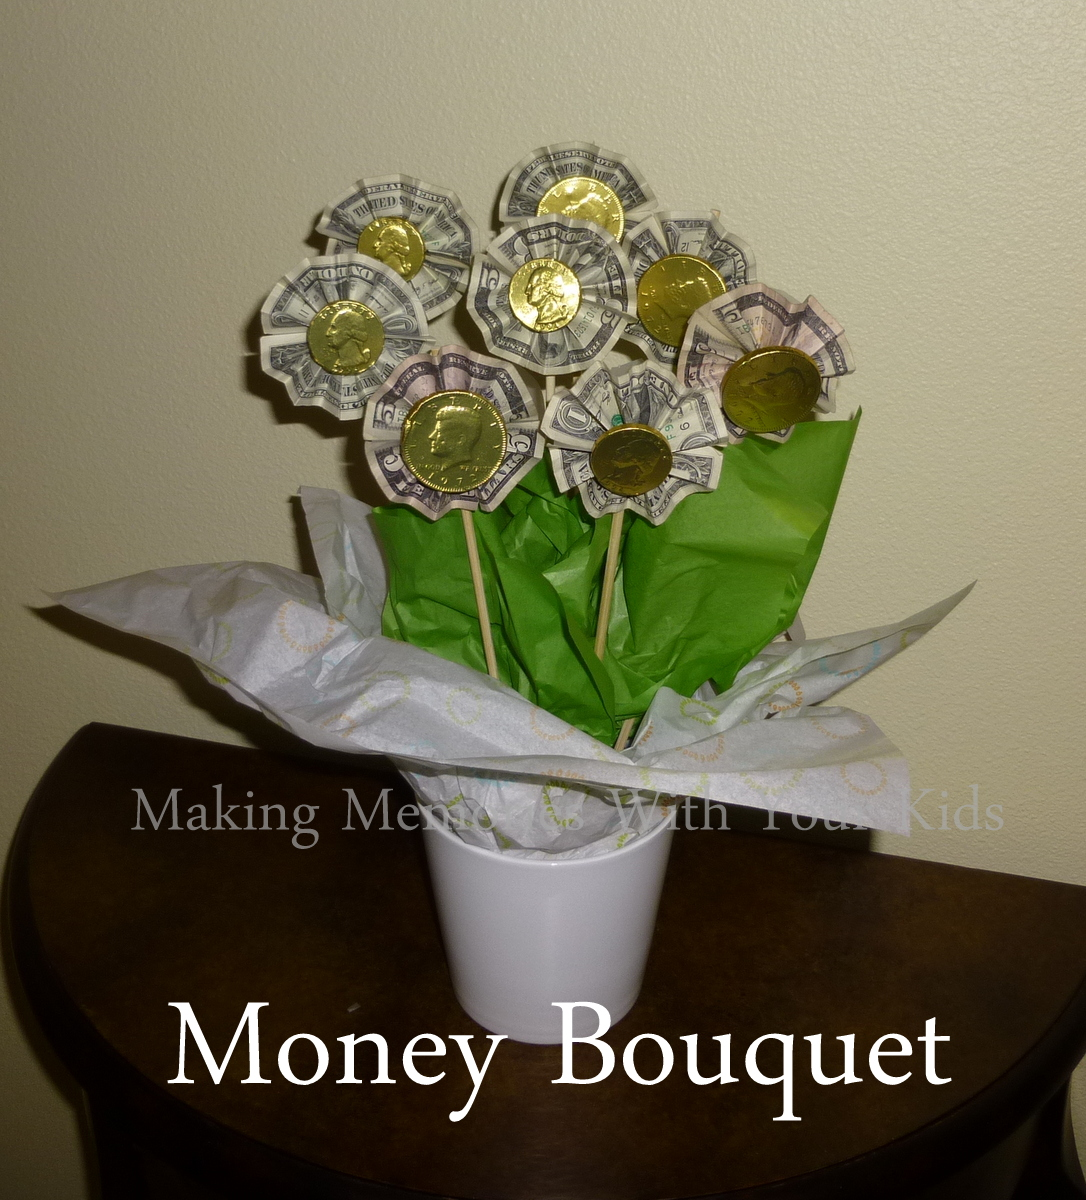 Money bouquet making memories with your kids izmirmasajfo